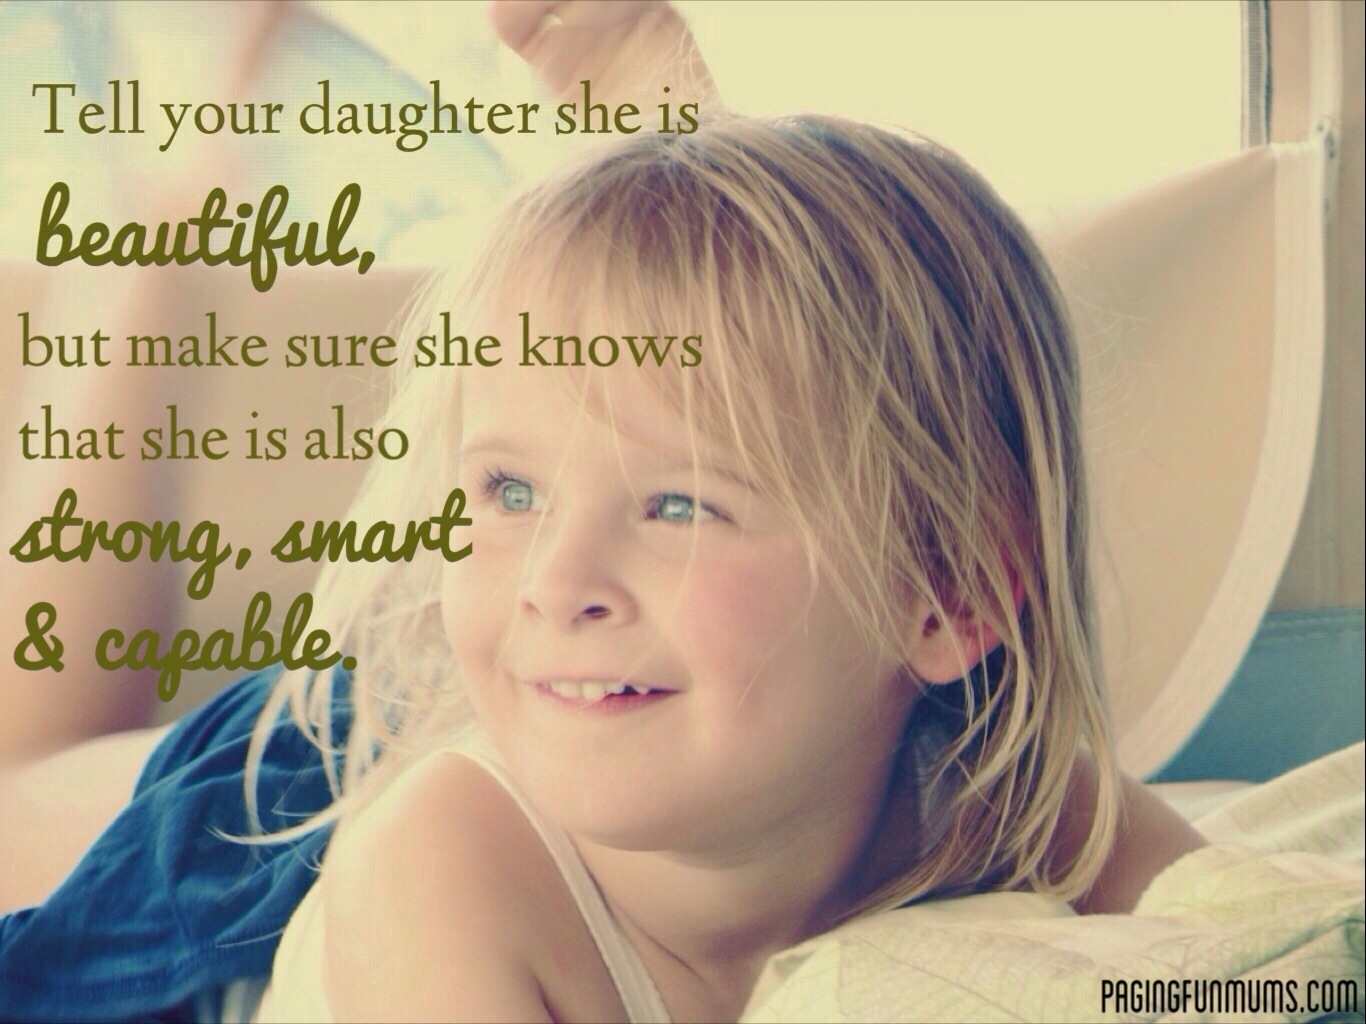 Tell Your Daughter She Is Beautiful, But Make Sure She Knows That She Is Also Strong, Smart & Capable